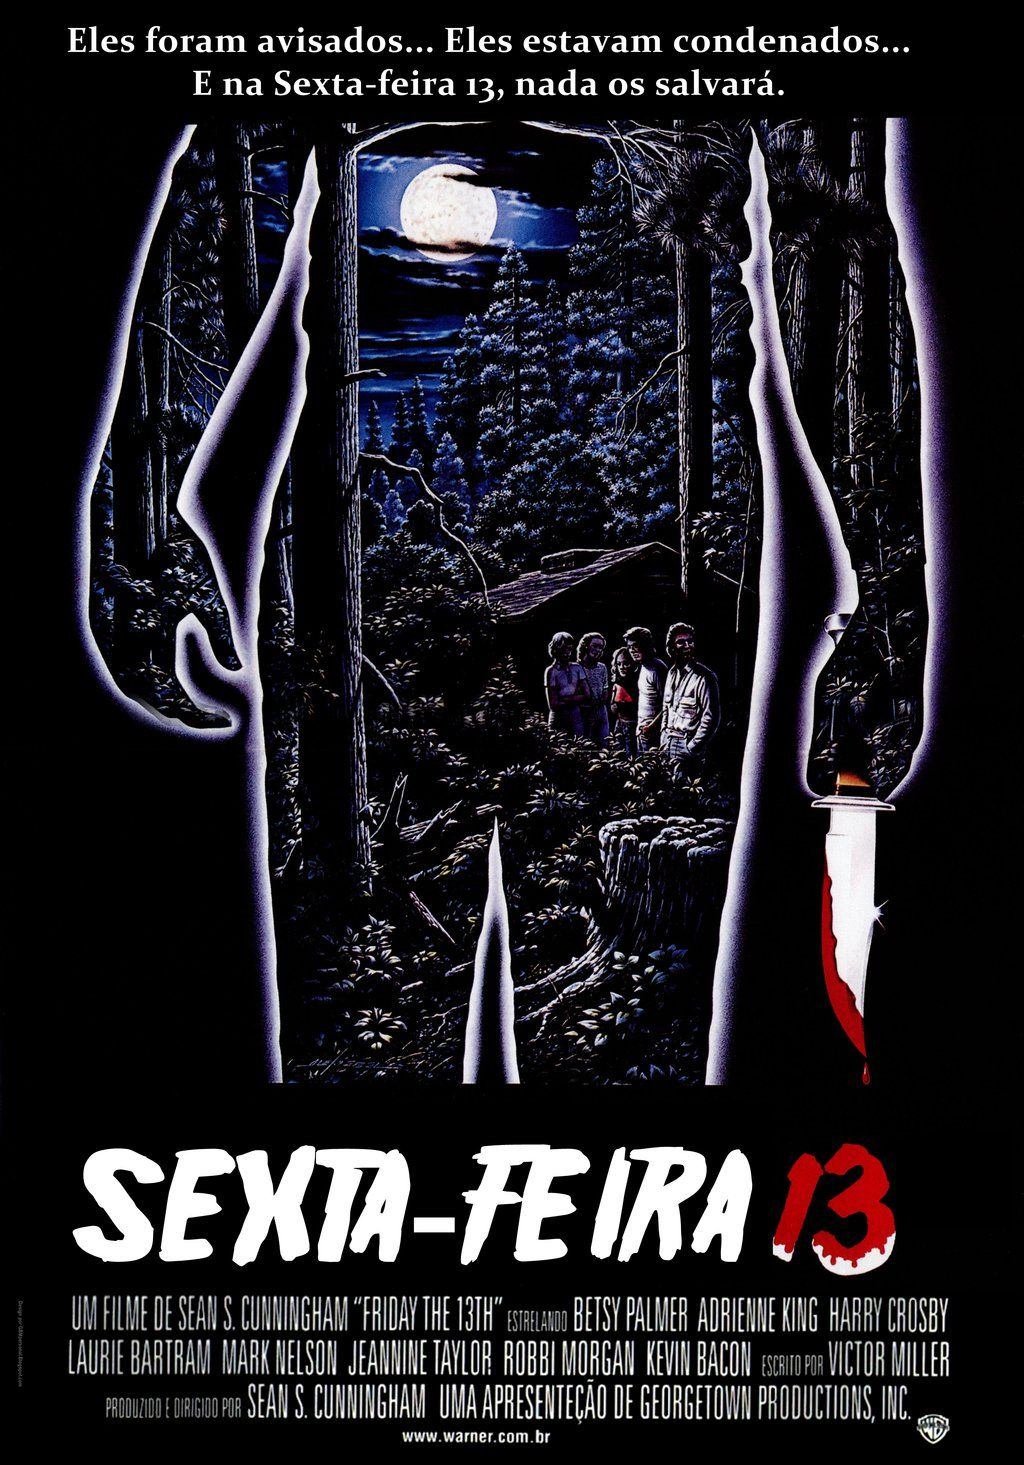 Friday The 13th Friday The 13th Poster Friday The 13th Horror Movie Posters